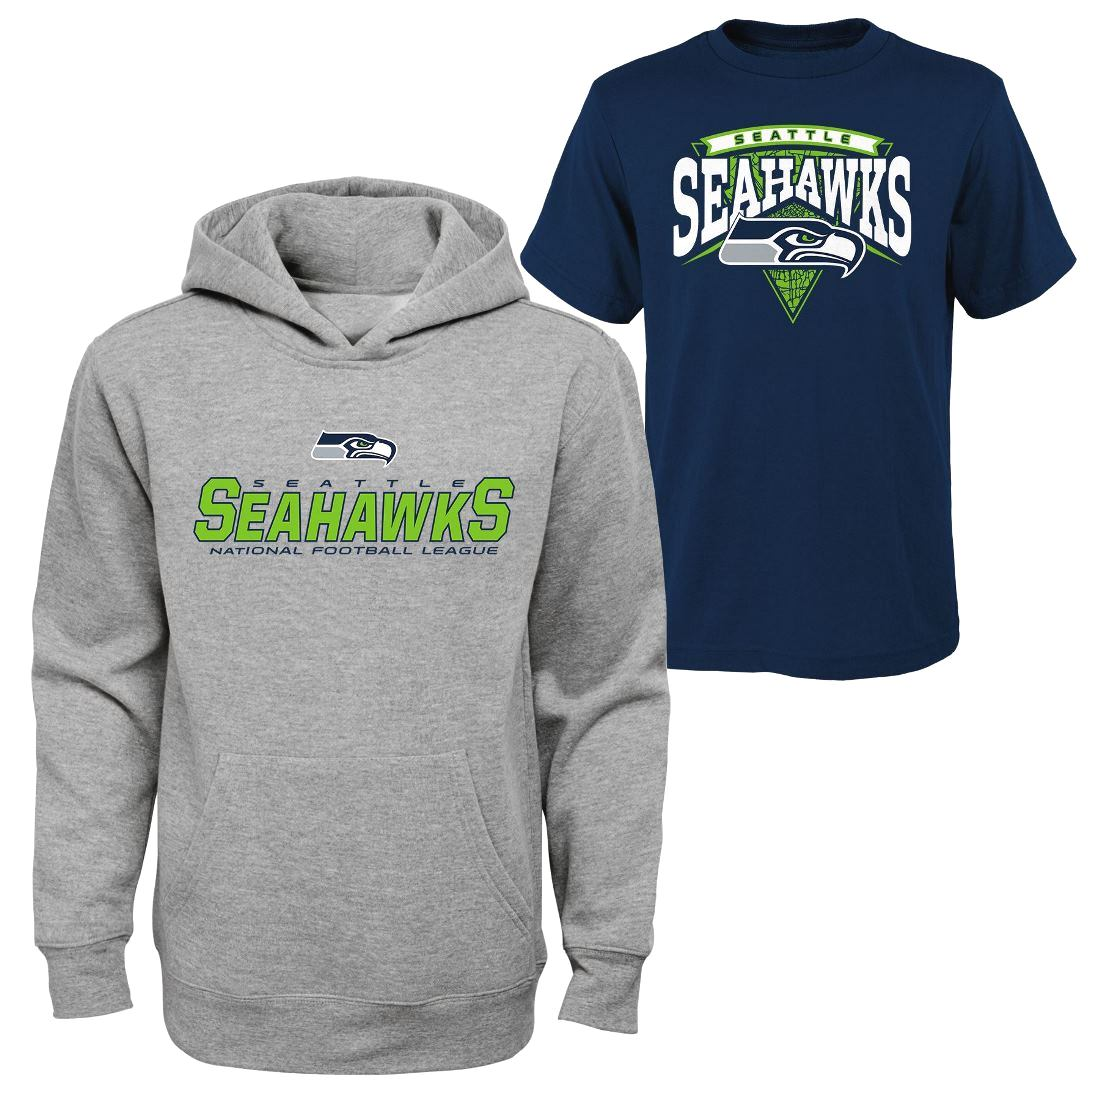 Buy Seattle Seahawks Youth Nfl Layered T Shirt Hooded Sweatshirt